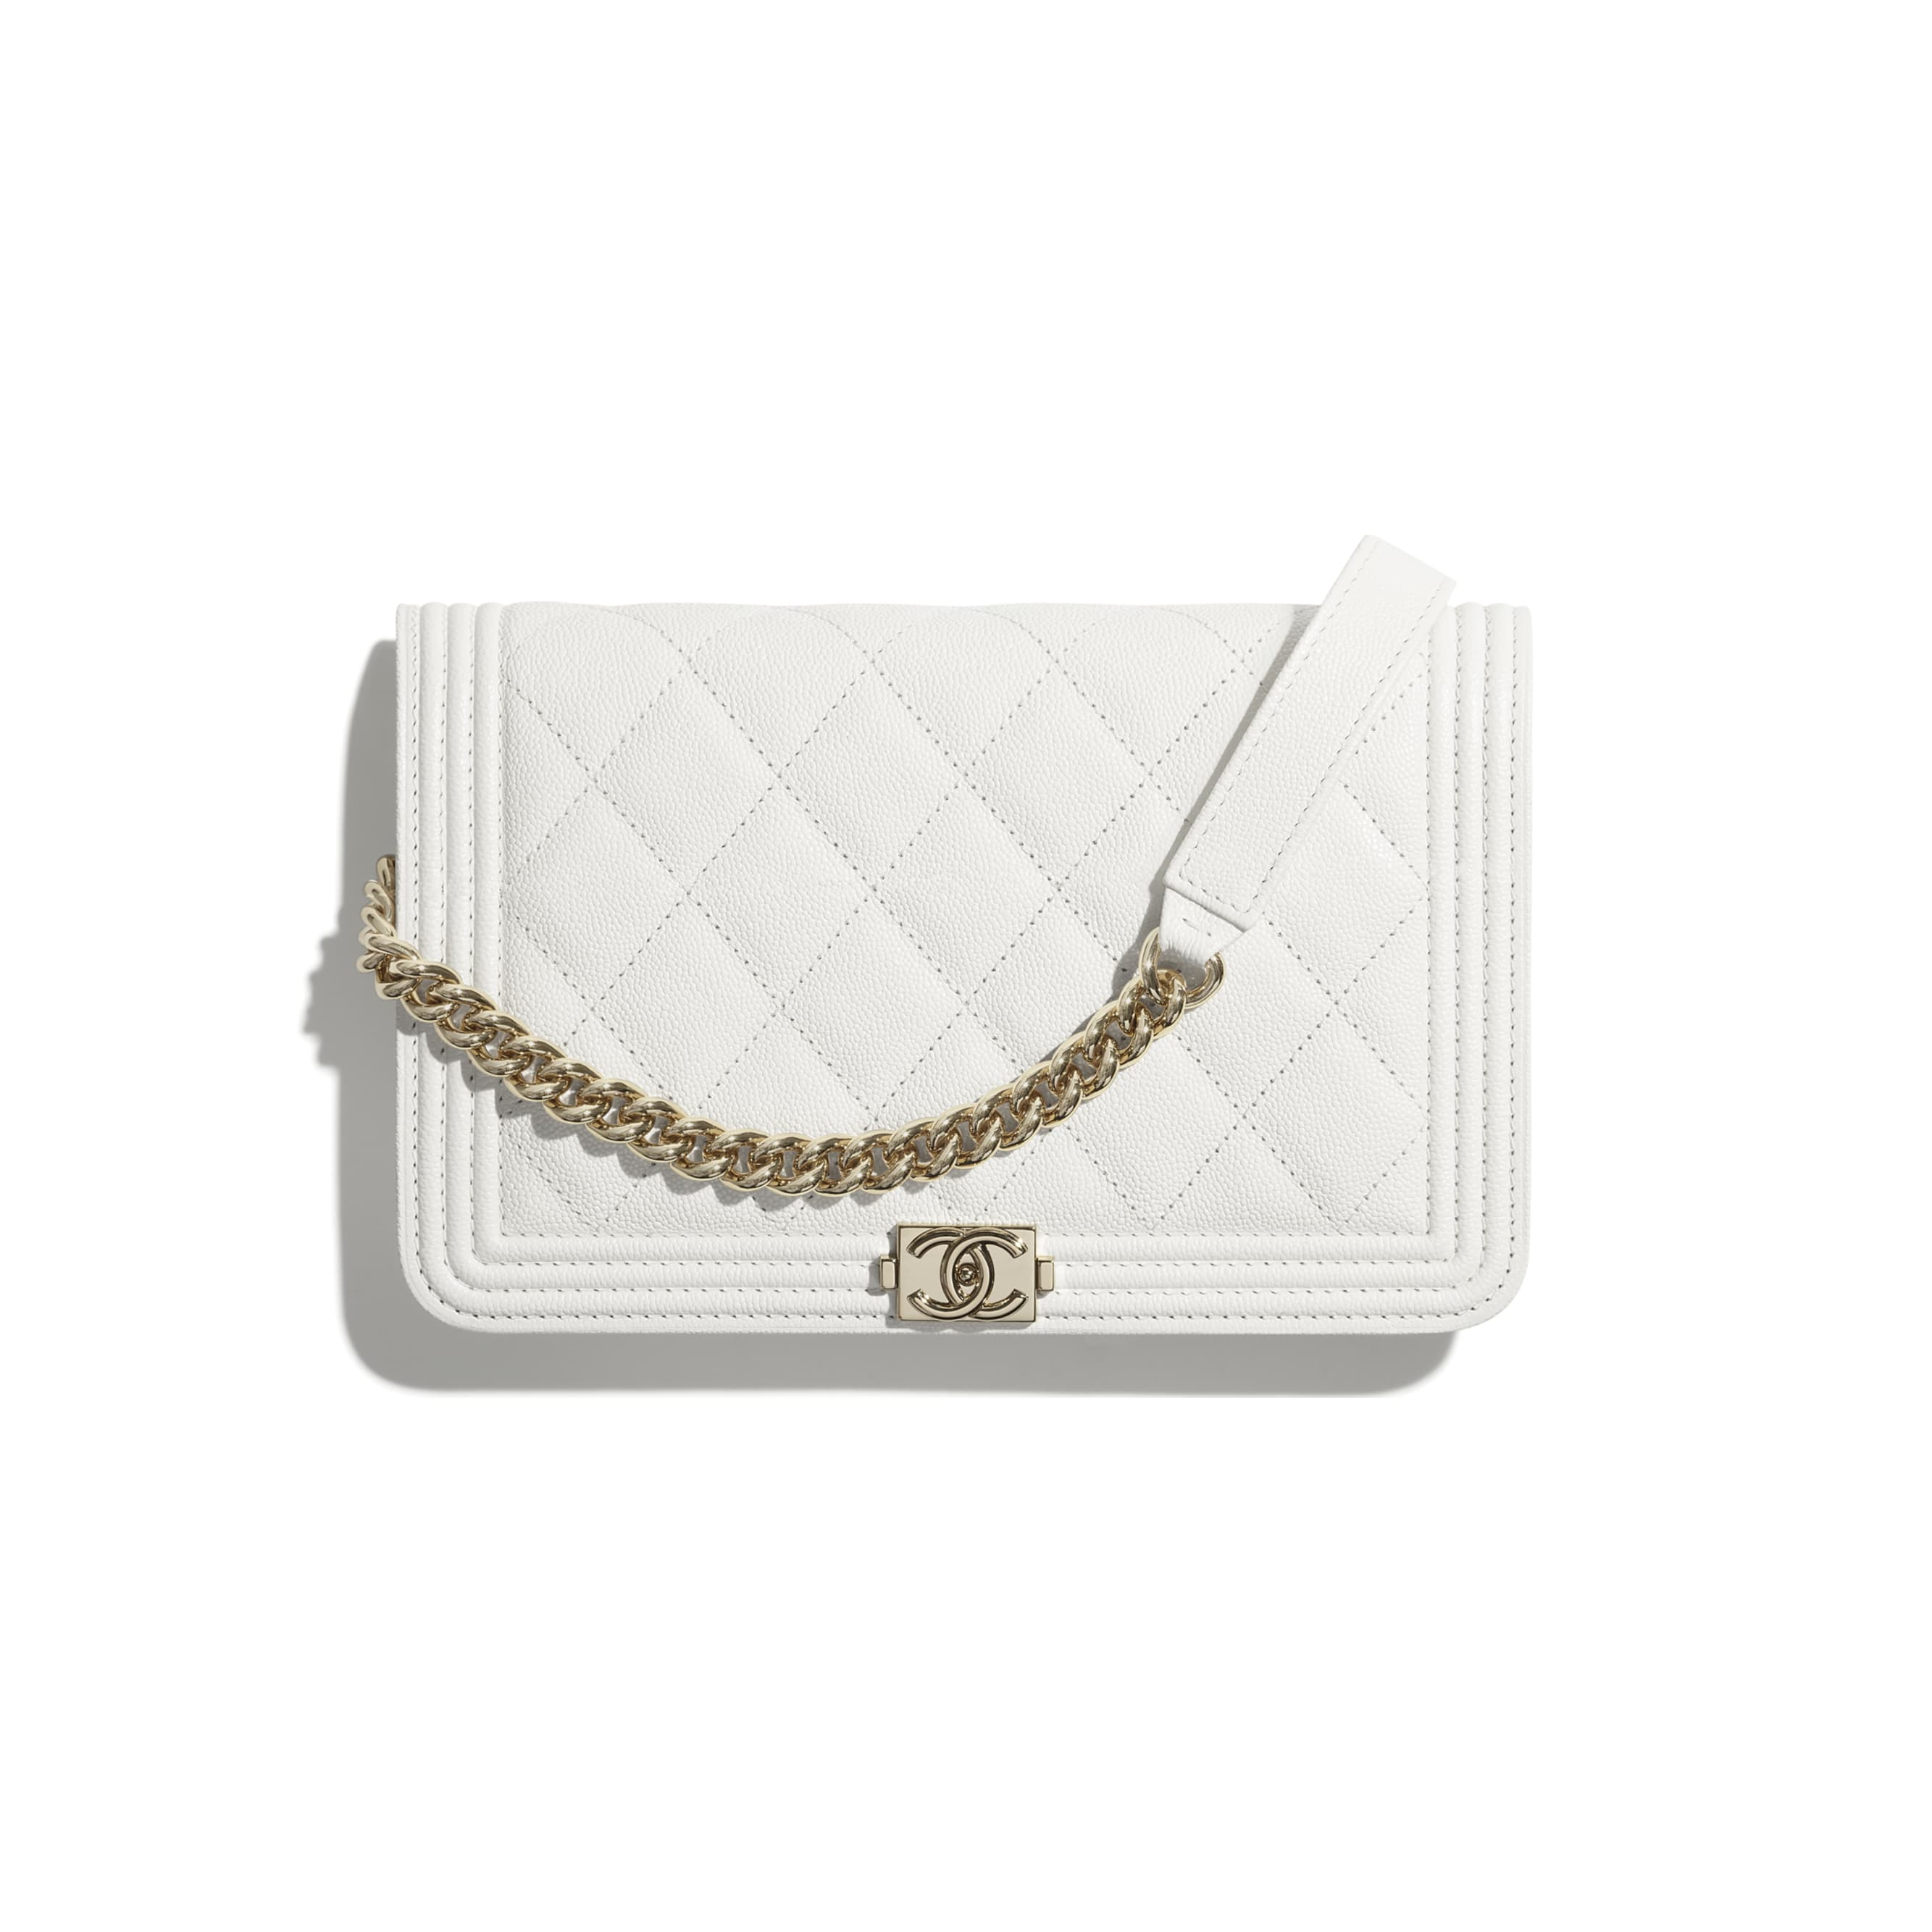 BOY CHANEL Wallet On Chain - White - Grained Calfskin & Gold-Tone Metal - CHANEL - Default view - see standard sized version